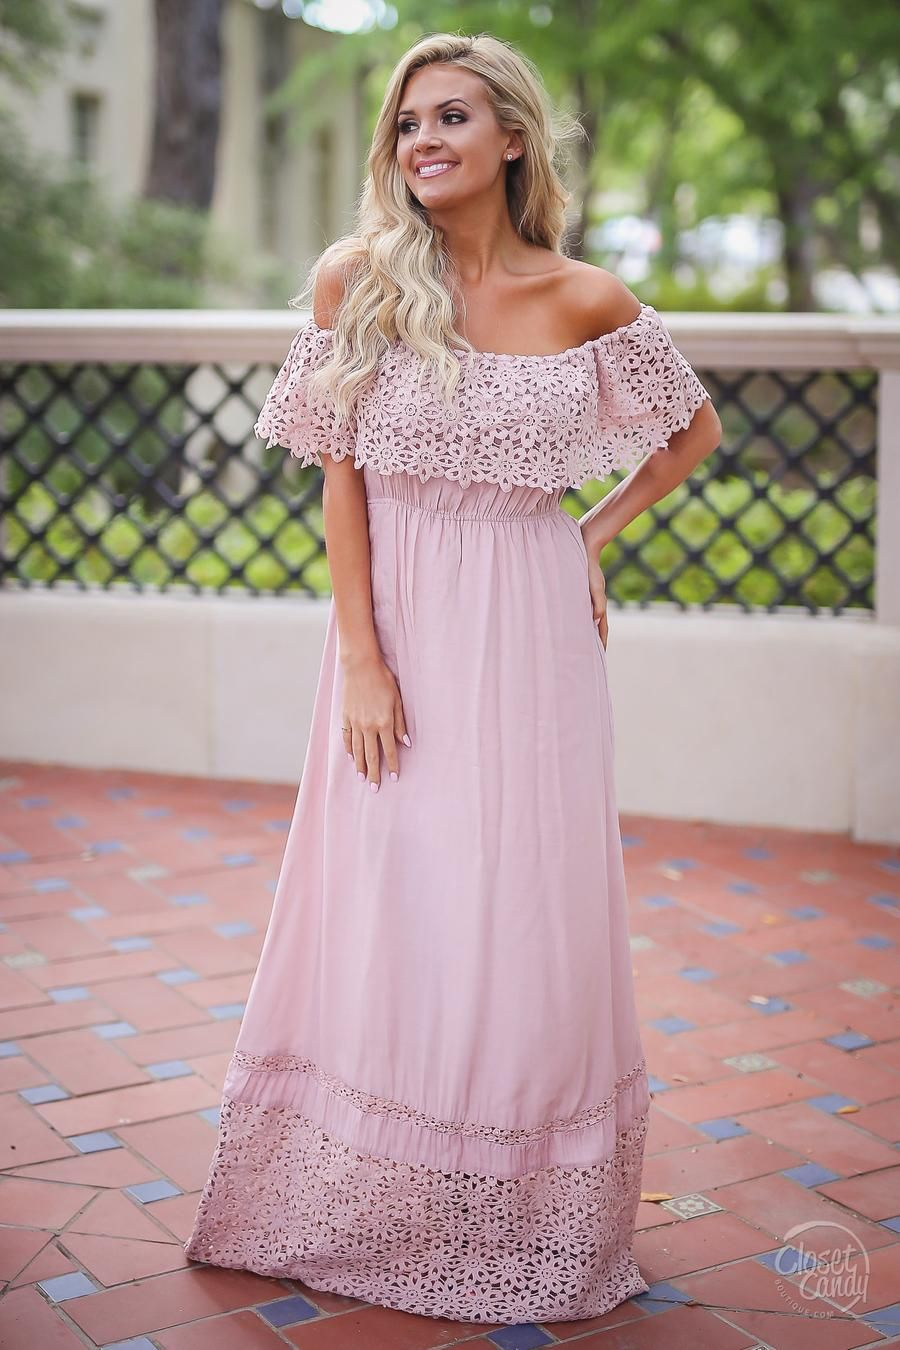 closet candy boutique dreaming in daisies maxi dress